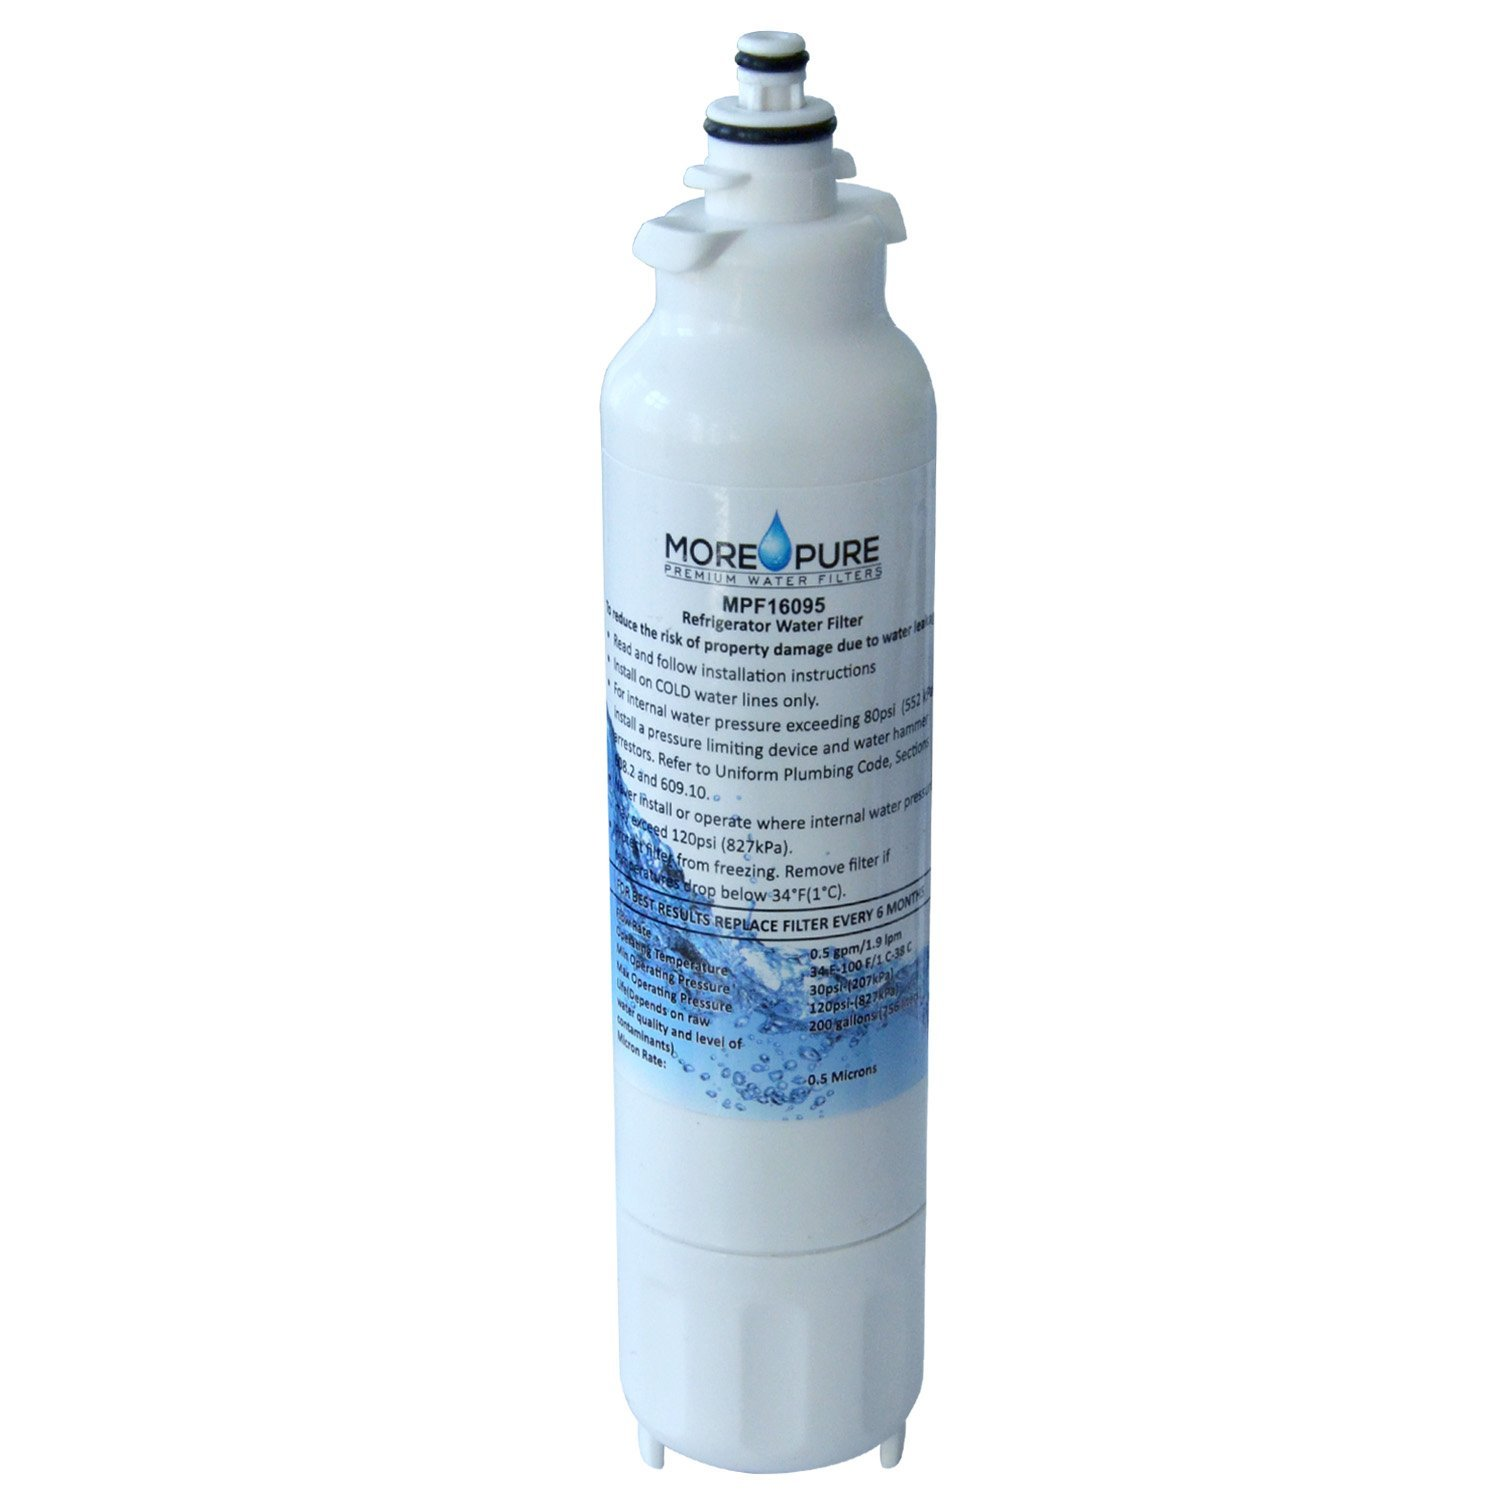 MORE Pure MPF16095 Refrigerator Water Filter Compatible with LG LT800P and Kenmore 46-9460 by MORE Pure Filters (Image #3)